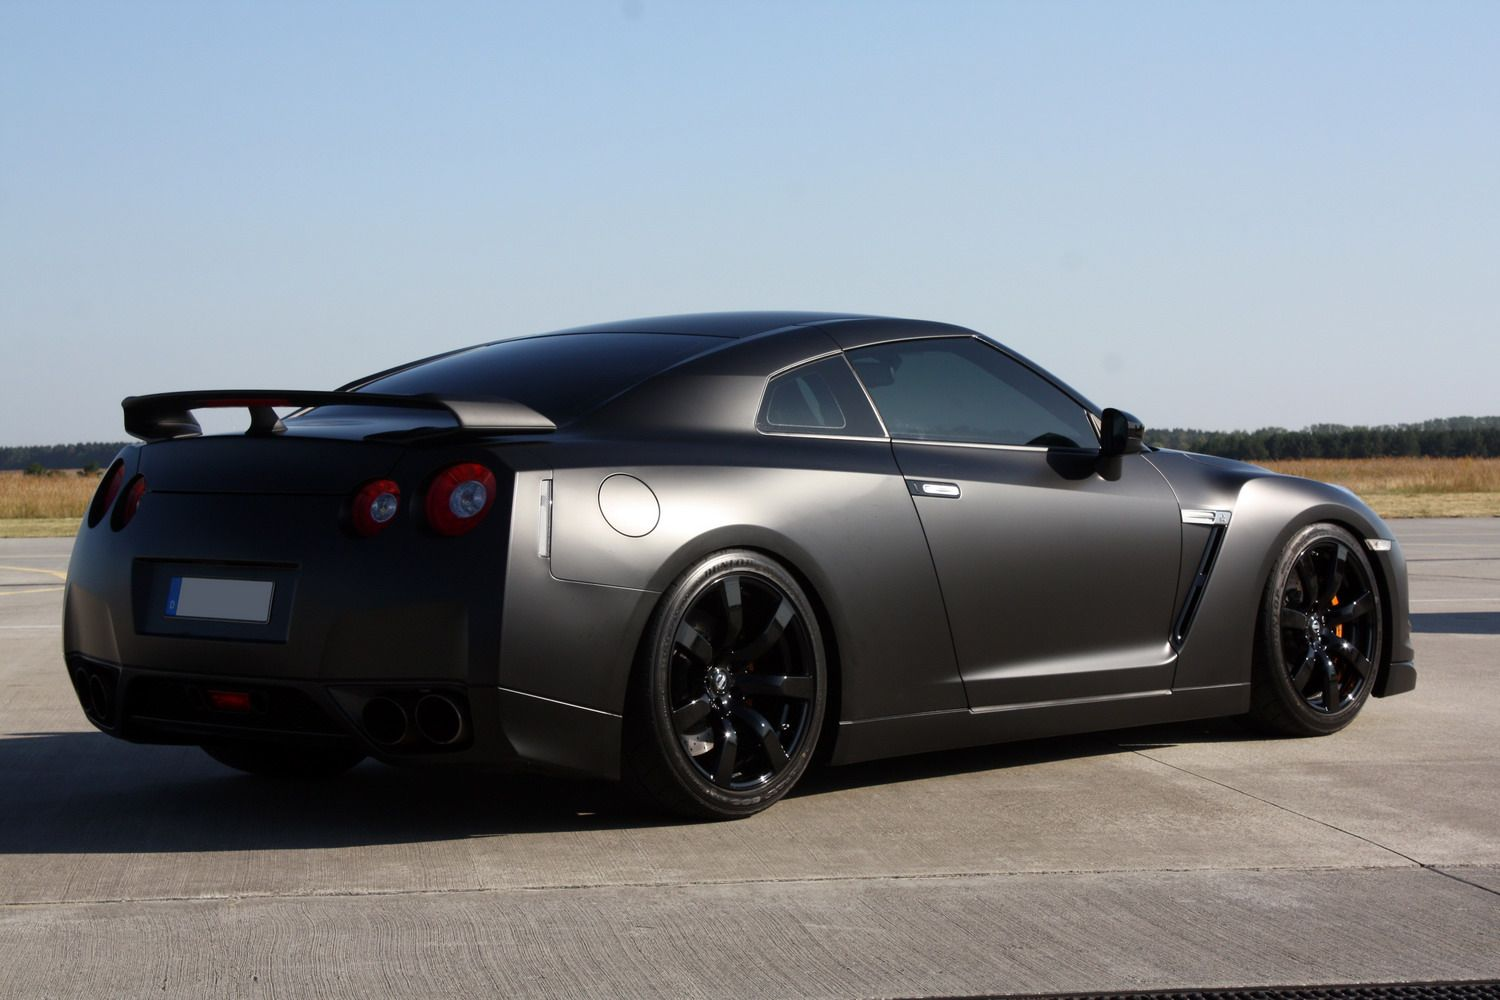 Delicieux Nissan GTR Black Edition I Really Want This Car!